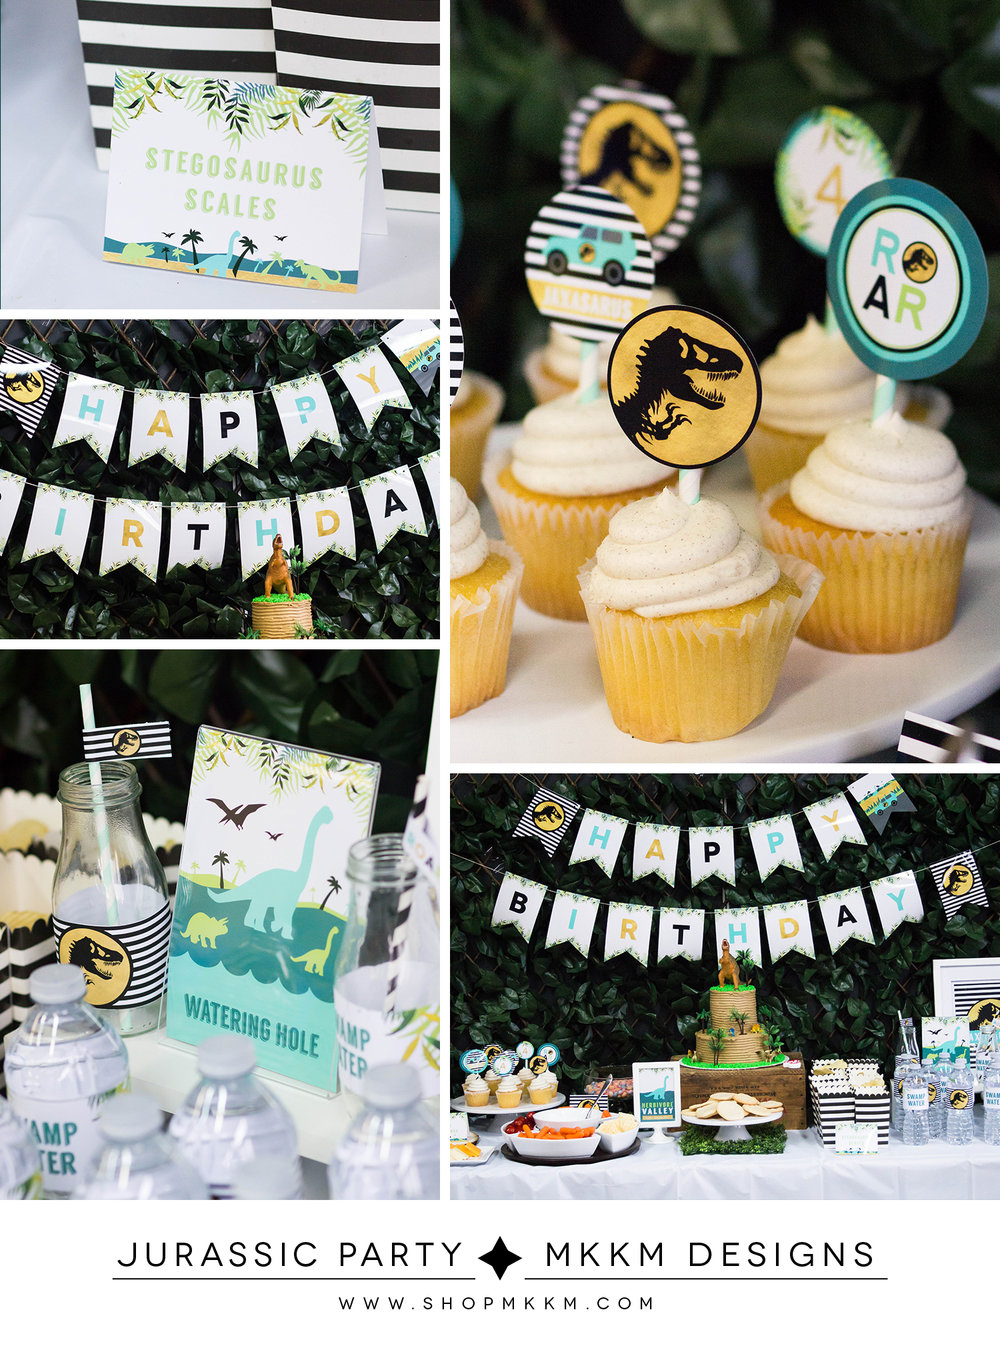 Jurassic Park Inspired birthday decor and free printable cupcake toppers. Designs from MKKM Designs